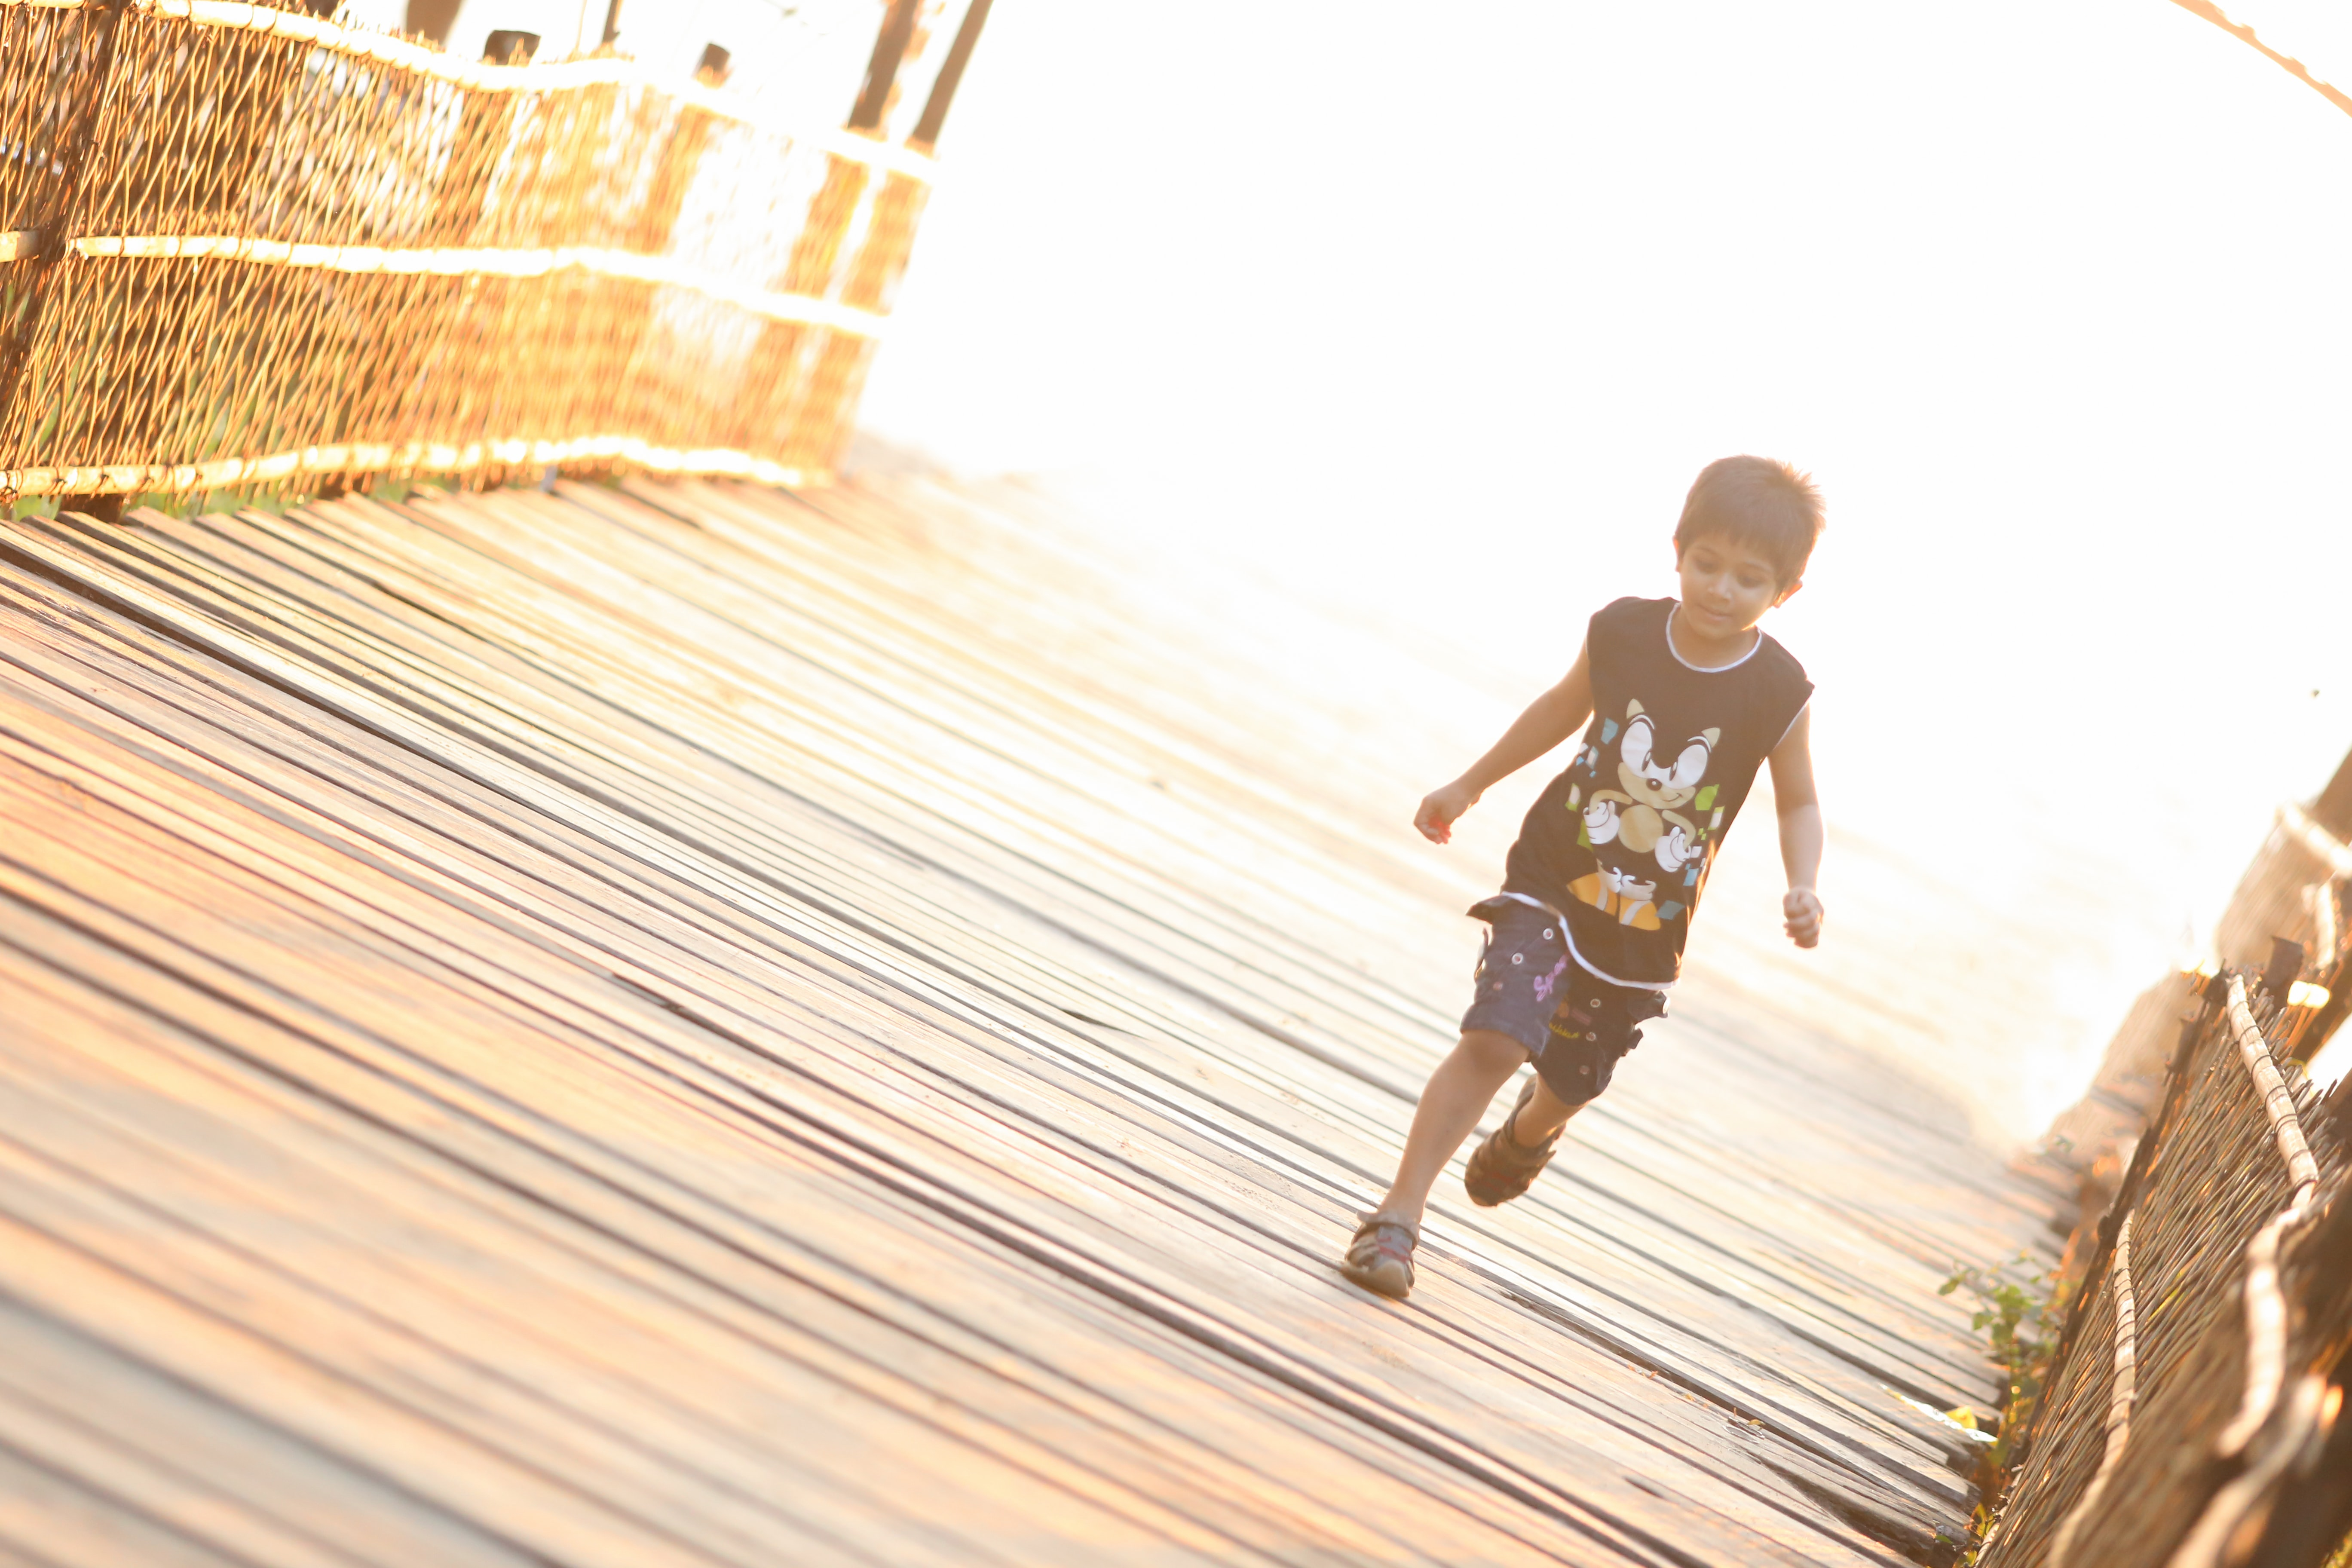 Male child wearing a Sonic t-shirt and sandals running across a wooden bridge in Bangladesh